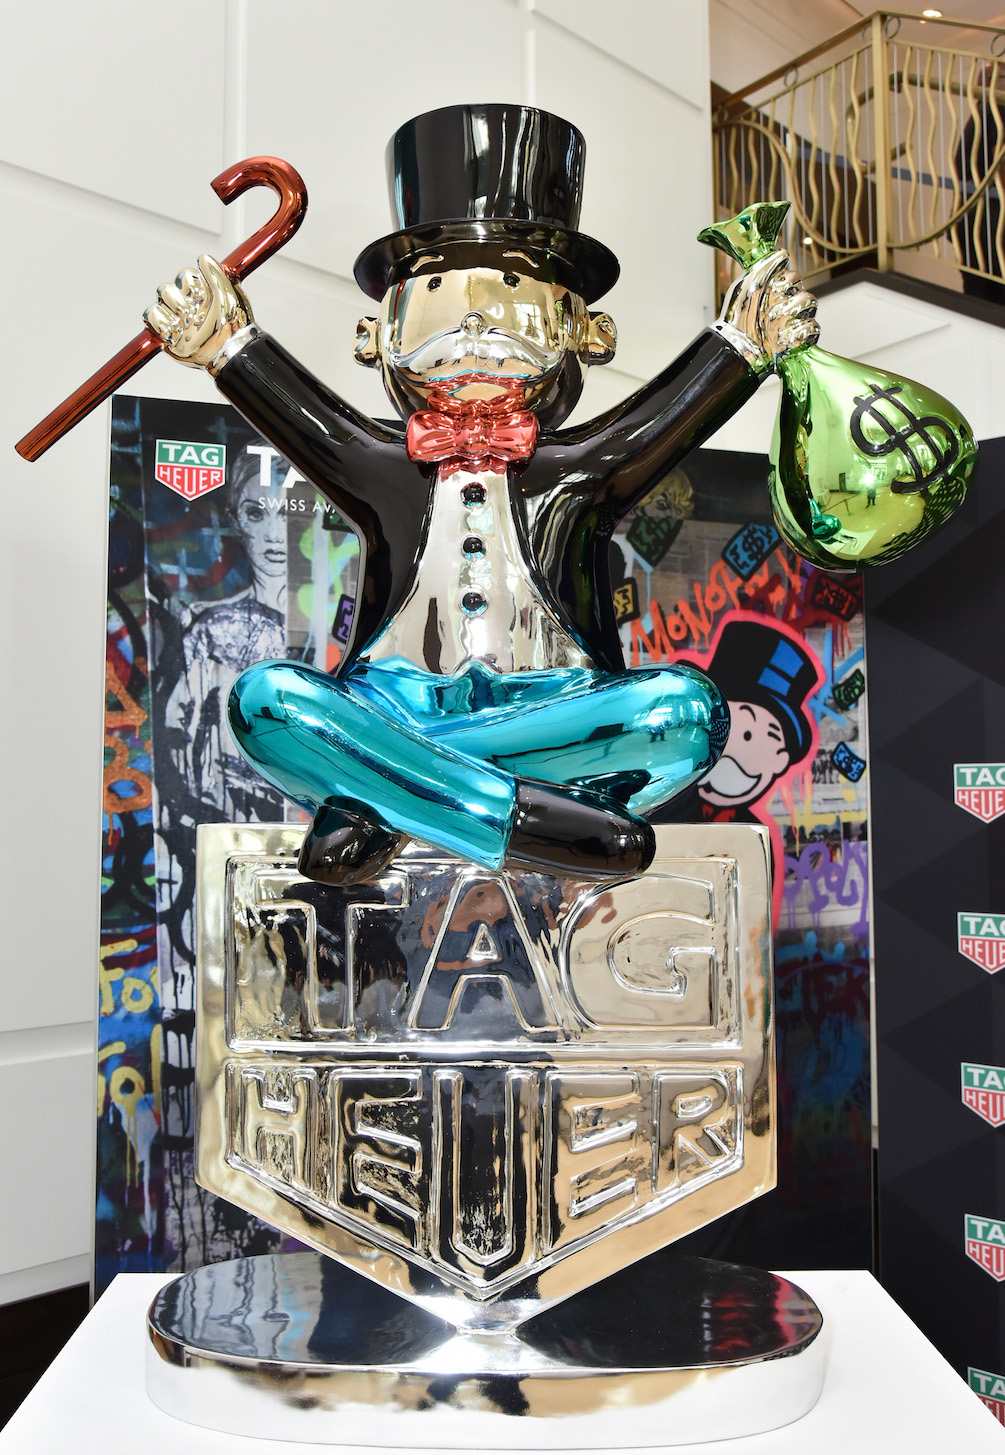 Fontainebleau Hotel Art Takeover With TAG Heuer Art Provocateur Alec Monopoly at Miami Design District on December 7, 2017 in Miami, Florida. (Photo by Eugene Gologursky/Getty Images for TAG Heuer)